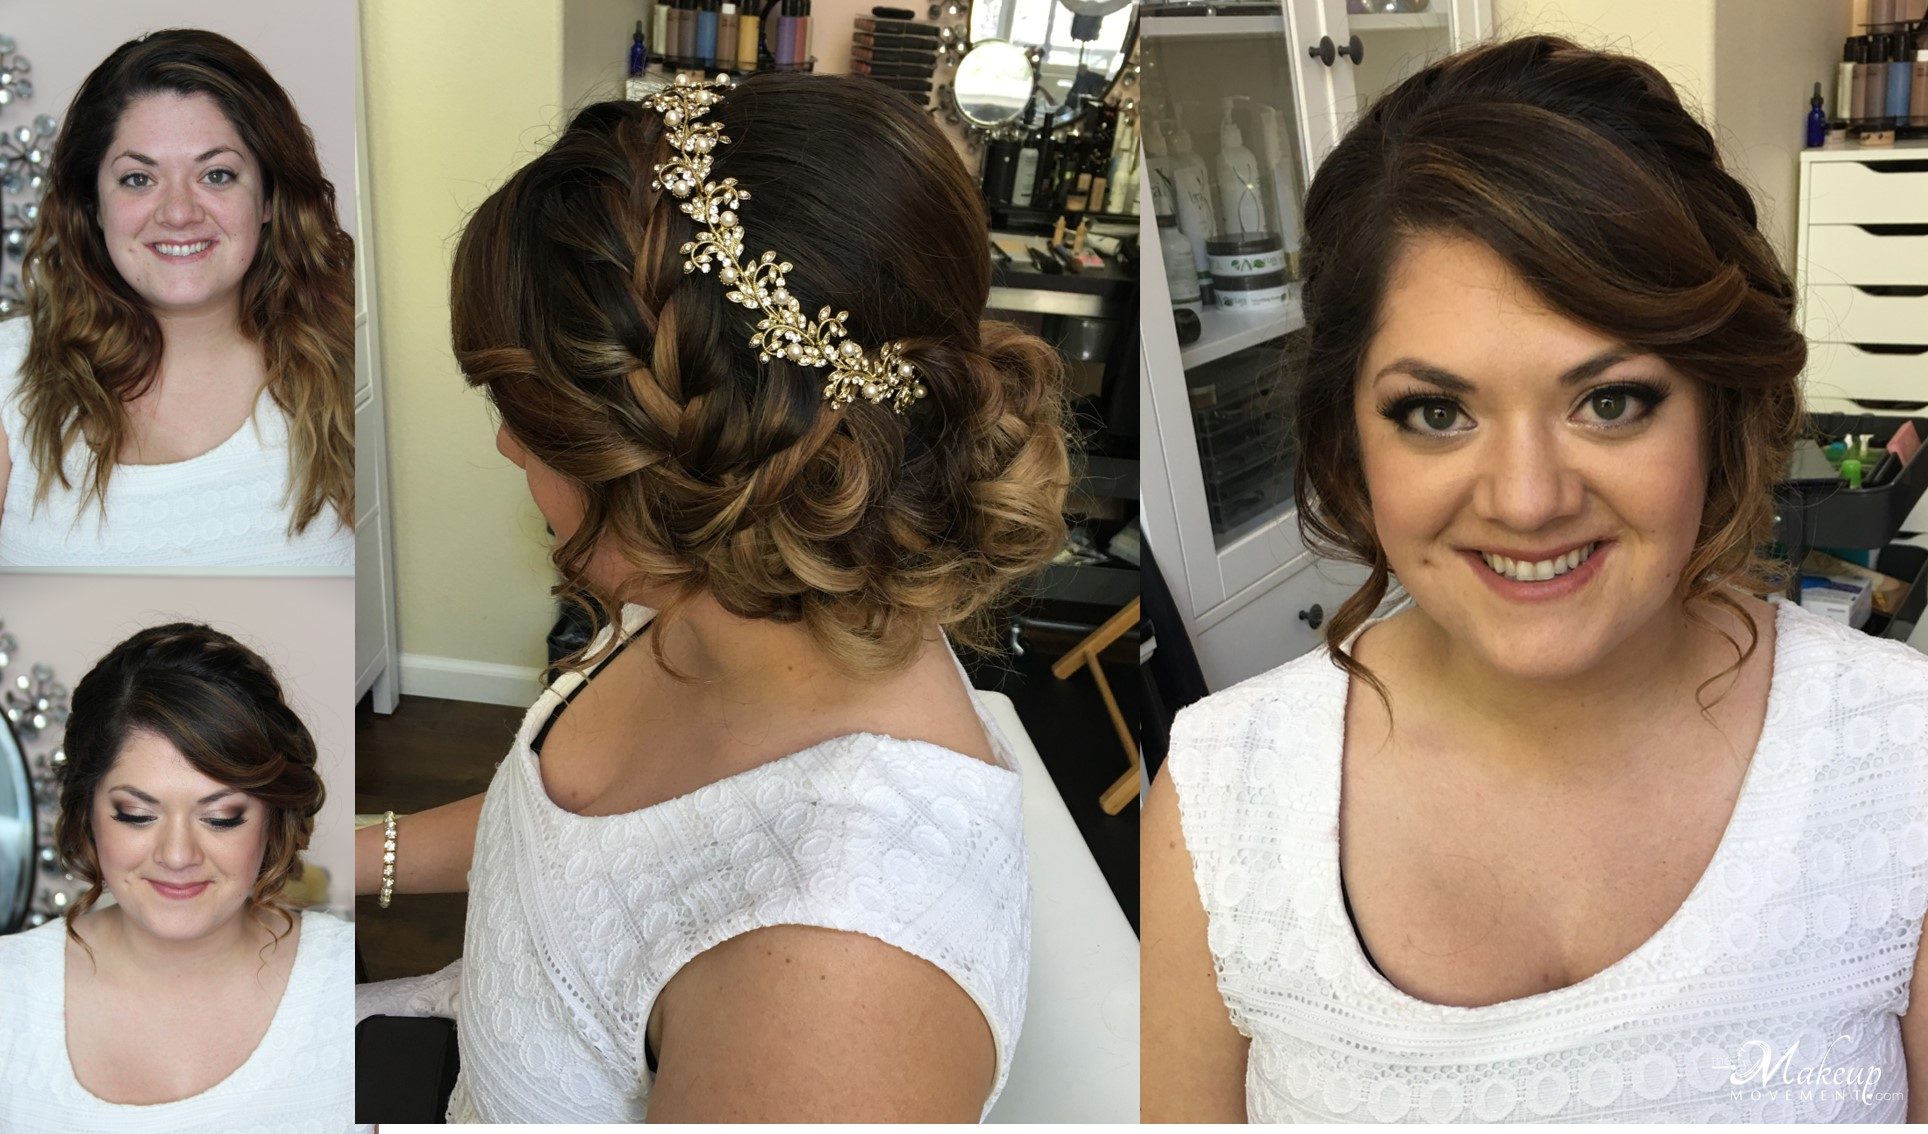 Bridal_Makeup_Hair_Before_After.jpg